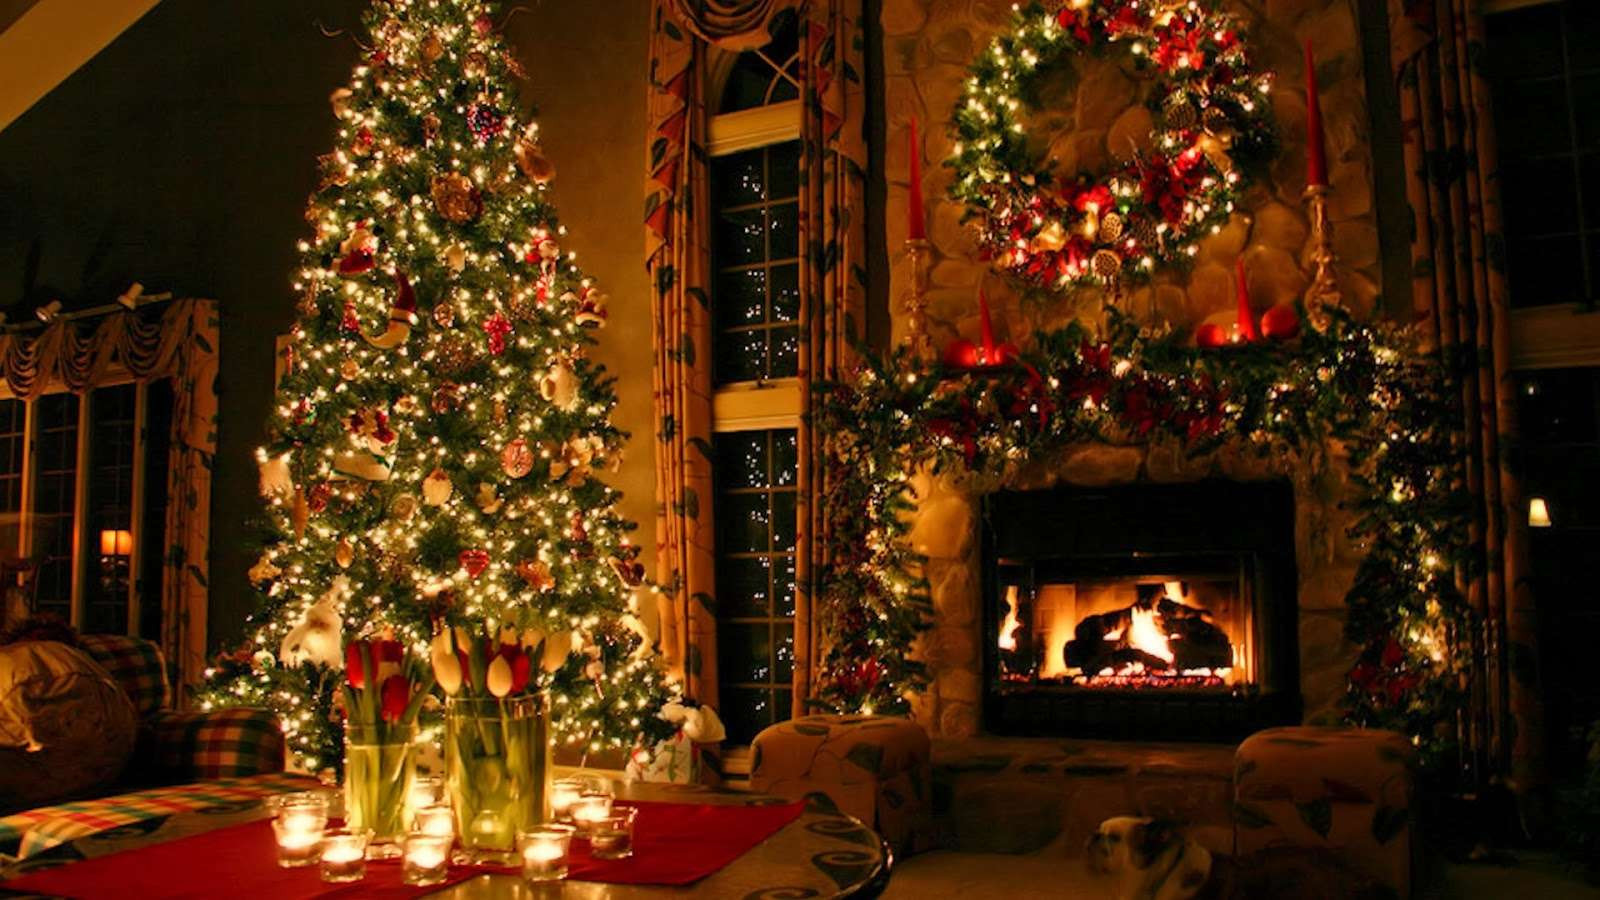 Christmas Decorators Best Of Get Decorative This Christmas Mozaico Blog Of Christmas Decorators Best Of Christmas Decoration S